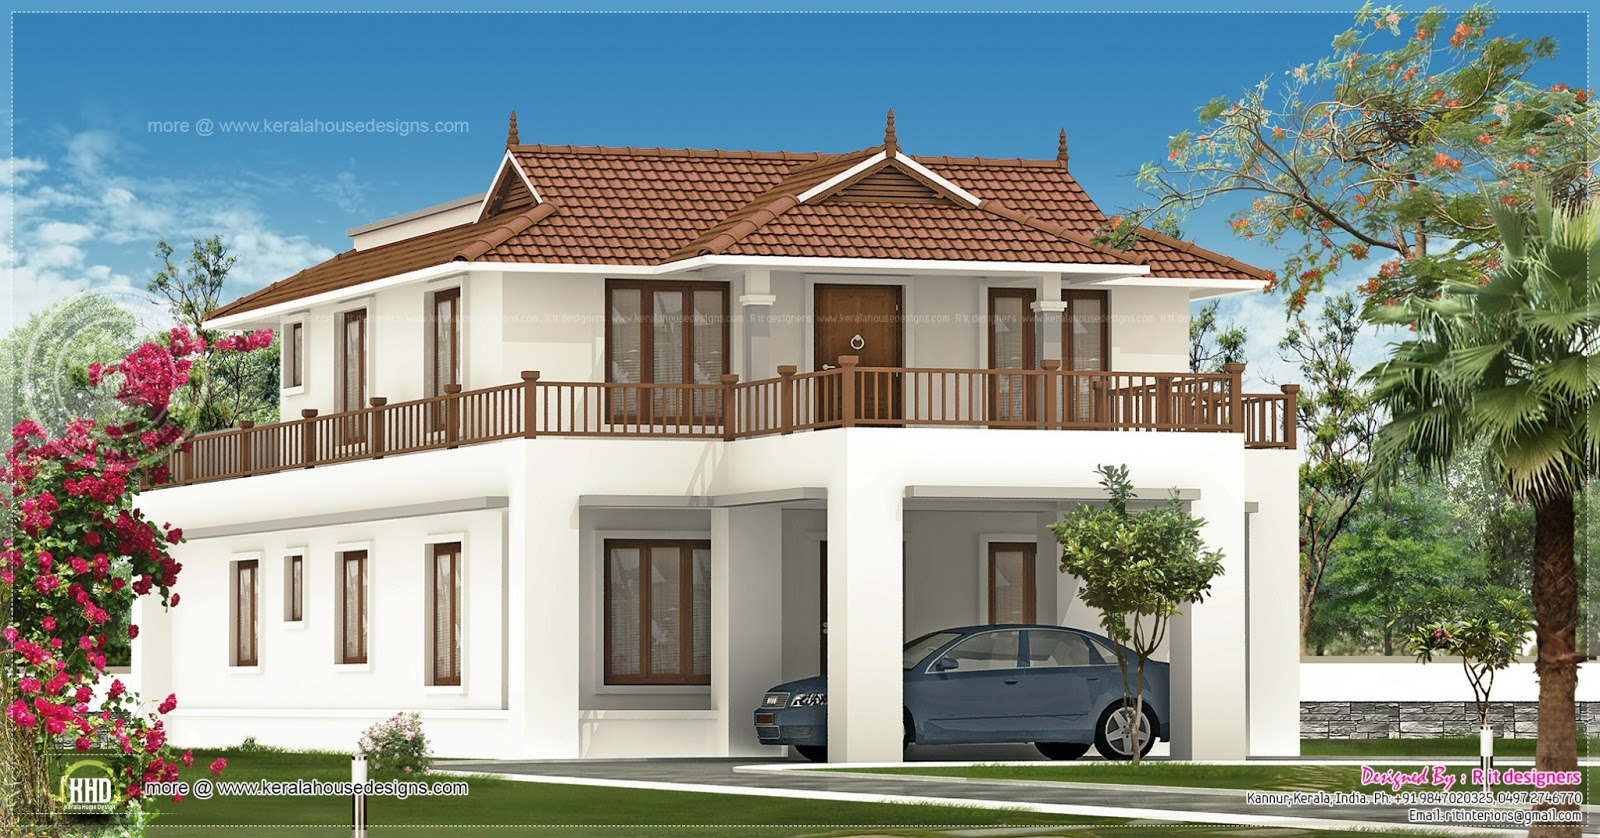 2820 square feet house exterior design home kerala plans for Home outside design images